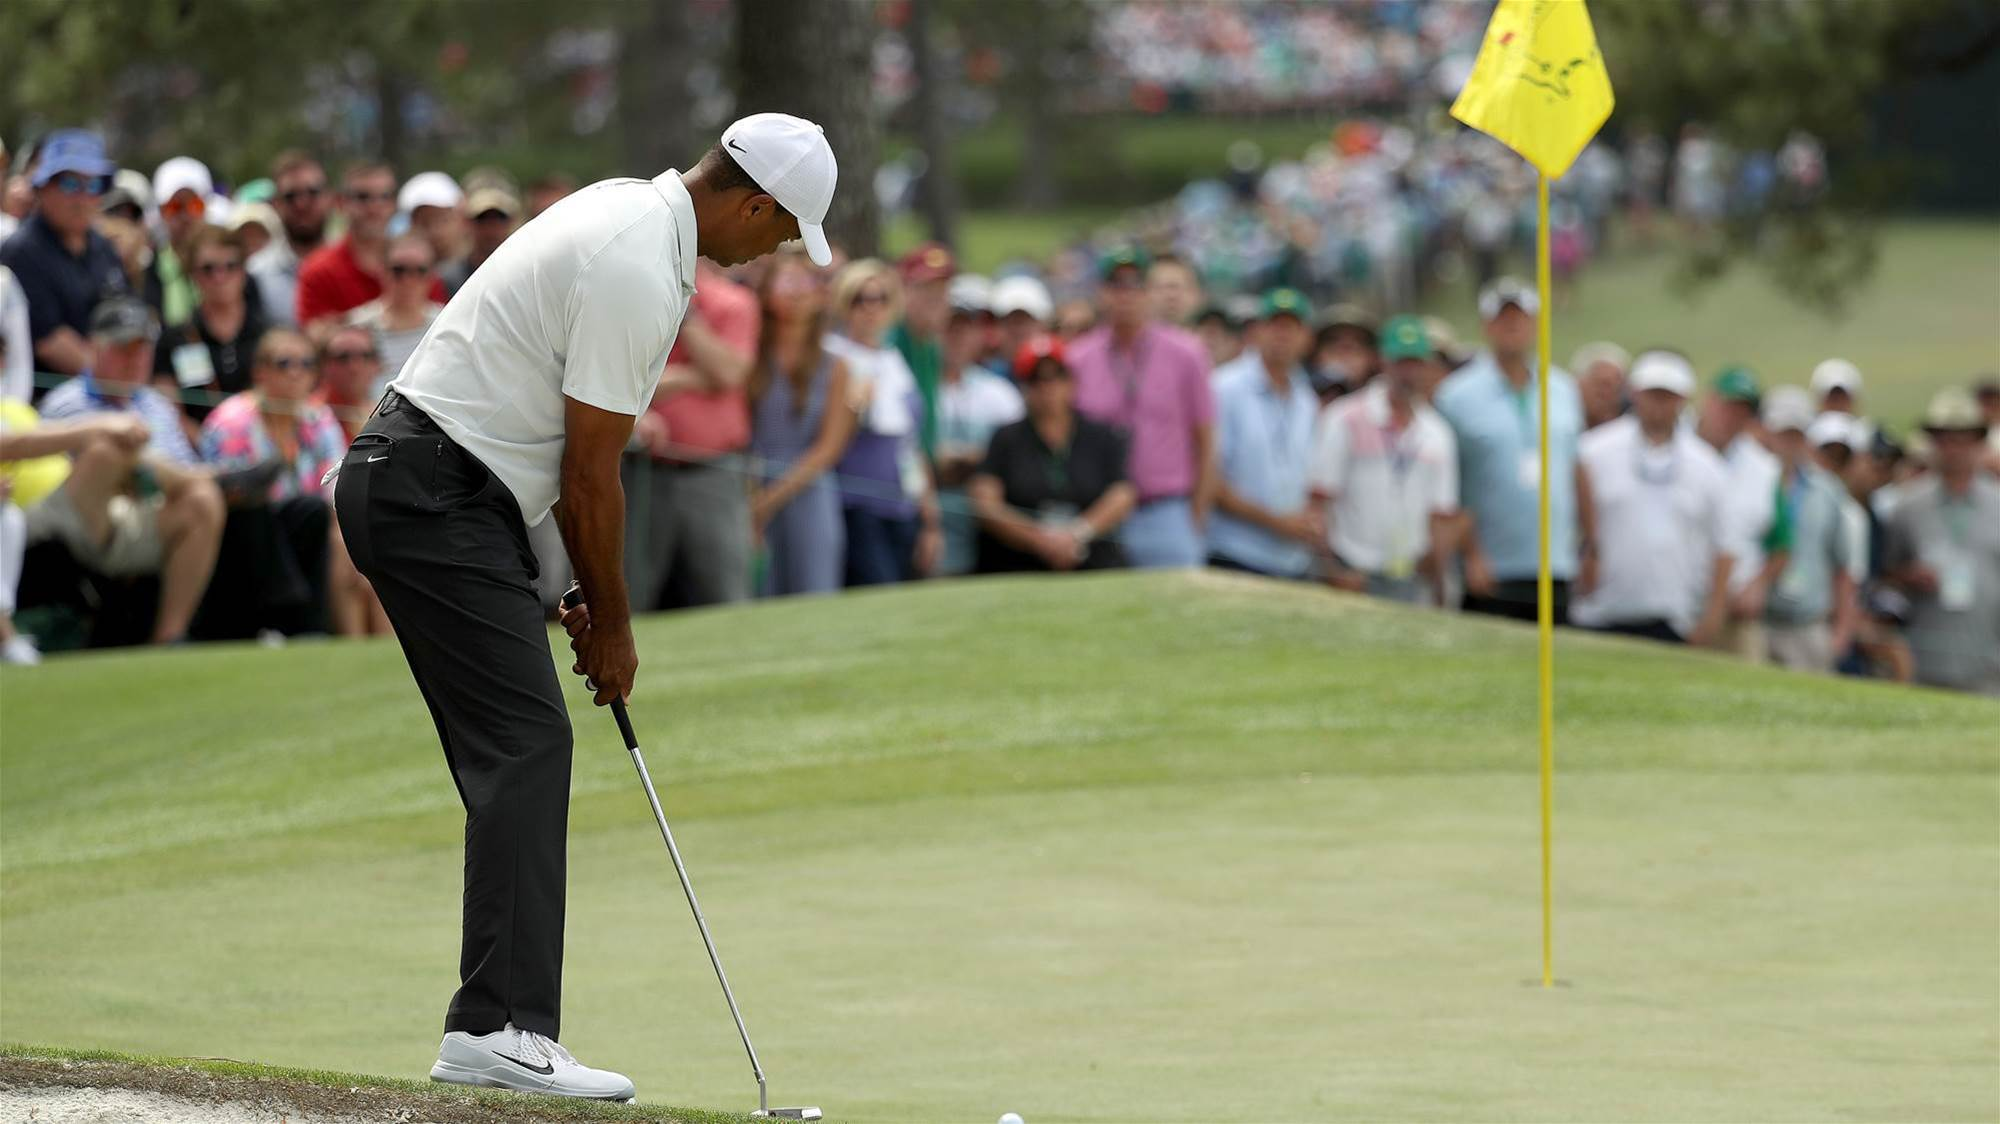 Flagstick rule can help at Masters: Woods